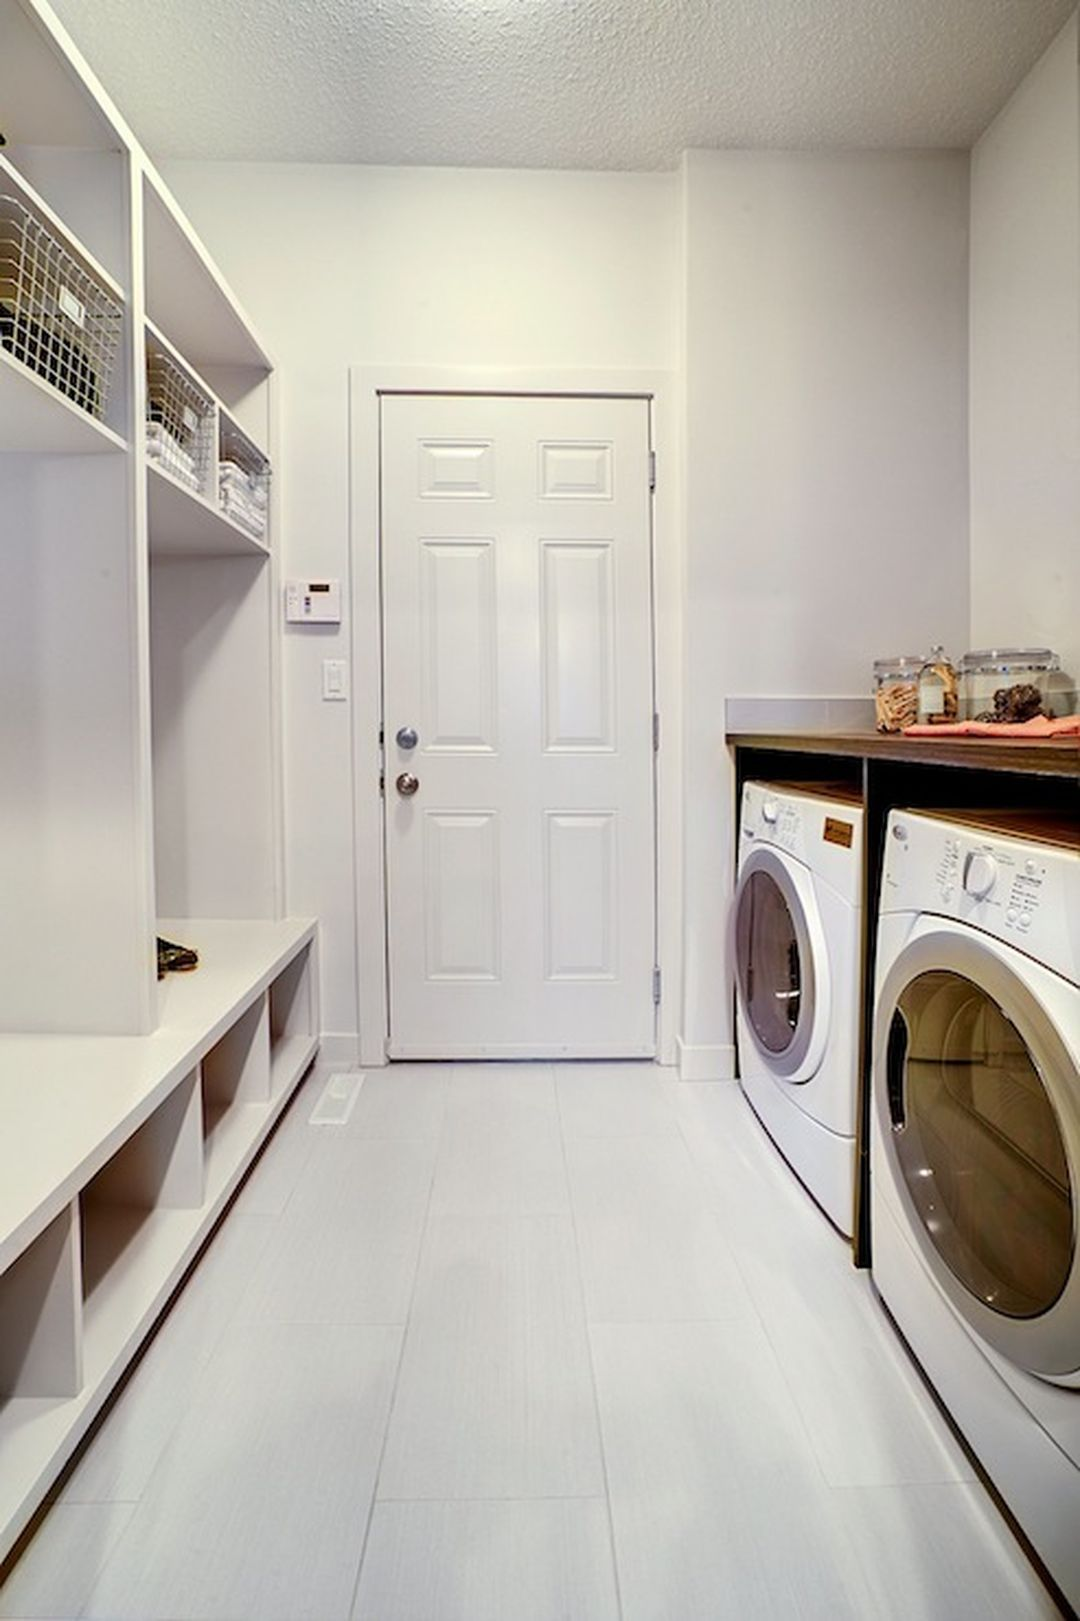 Best Laundry Mudroom Combo Ever Designed (03 images